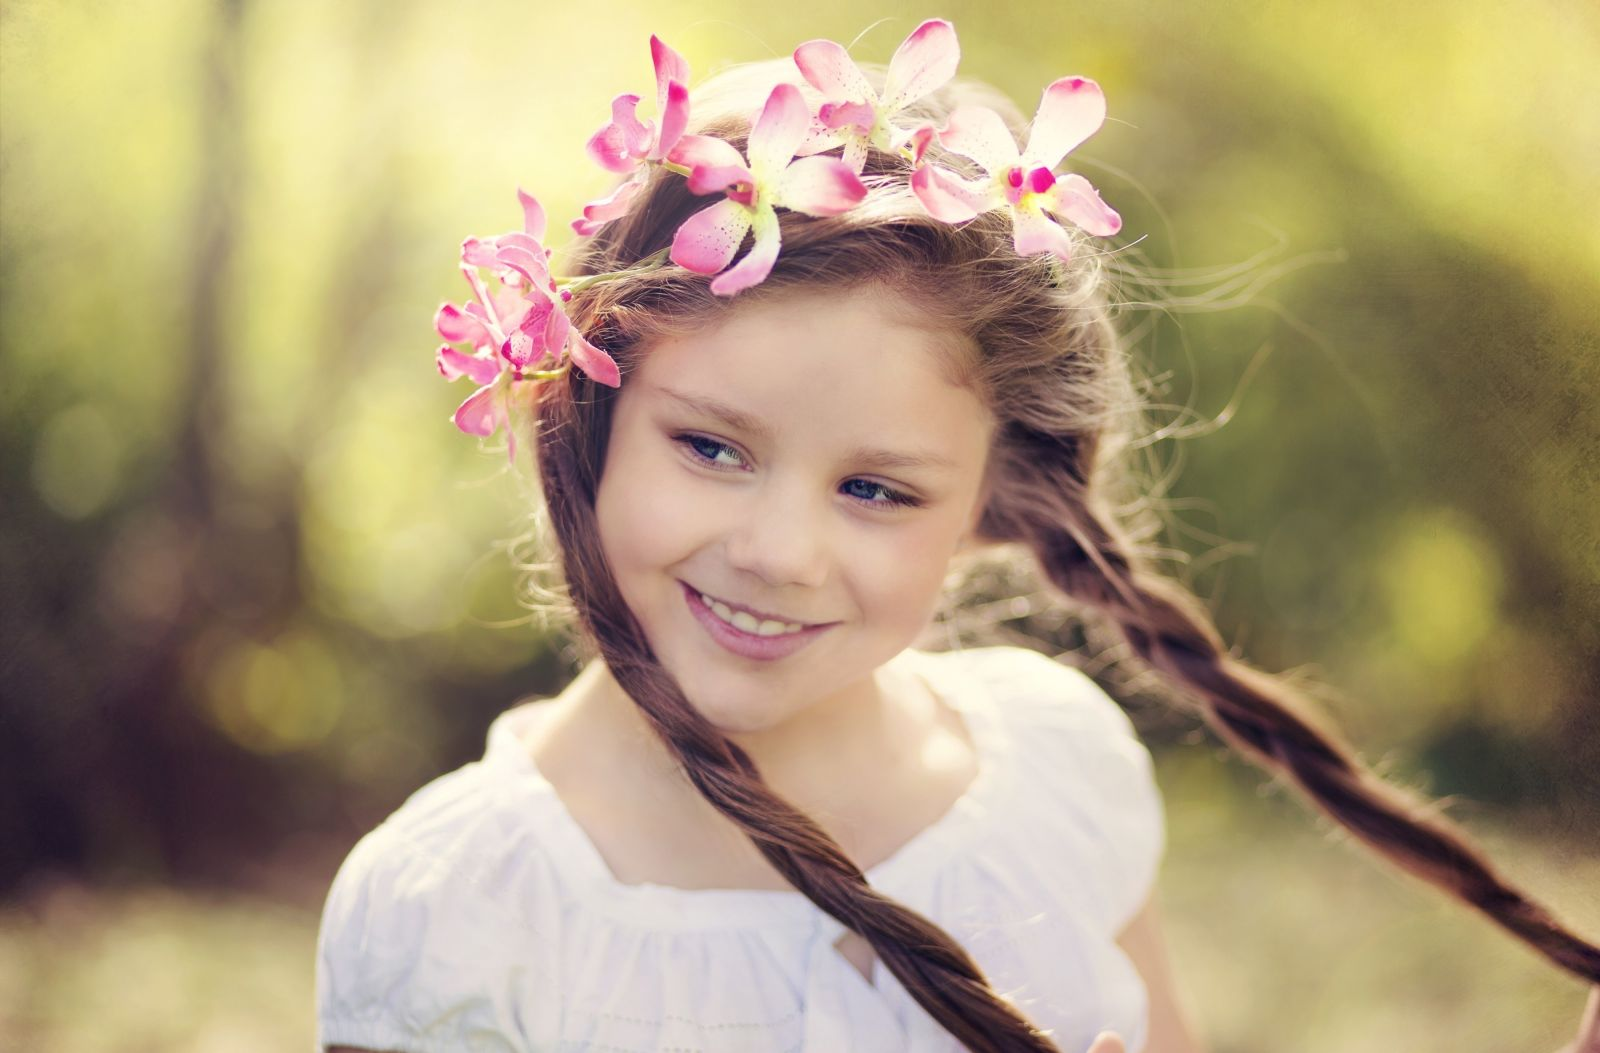 Stupendous Cute 13 Little Girl Hairstyles For School Easy And Fast Models Hairstyles For Men Maxibearus